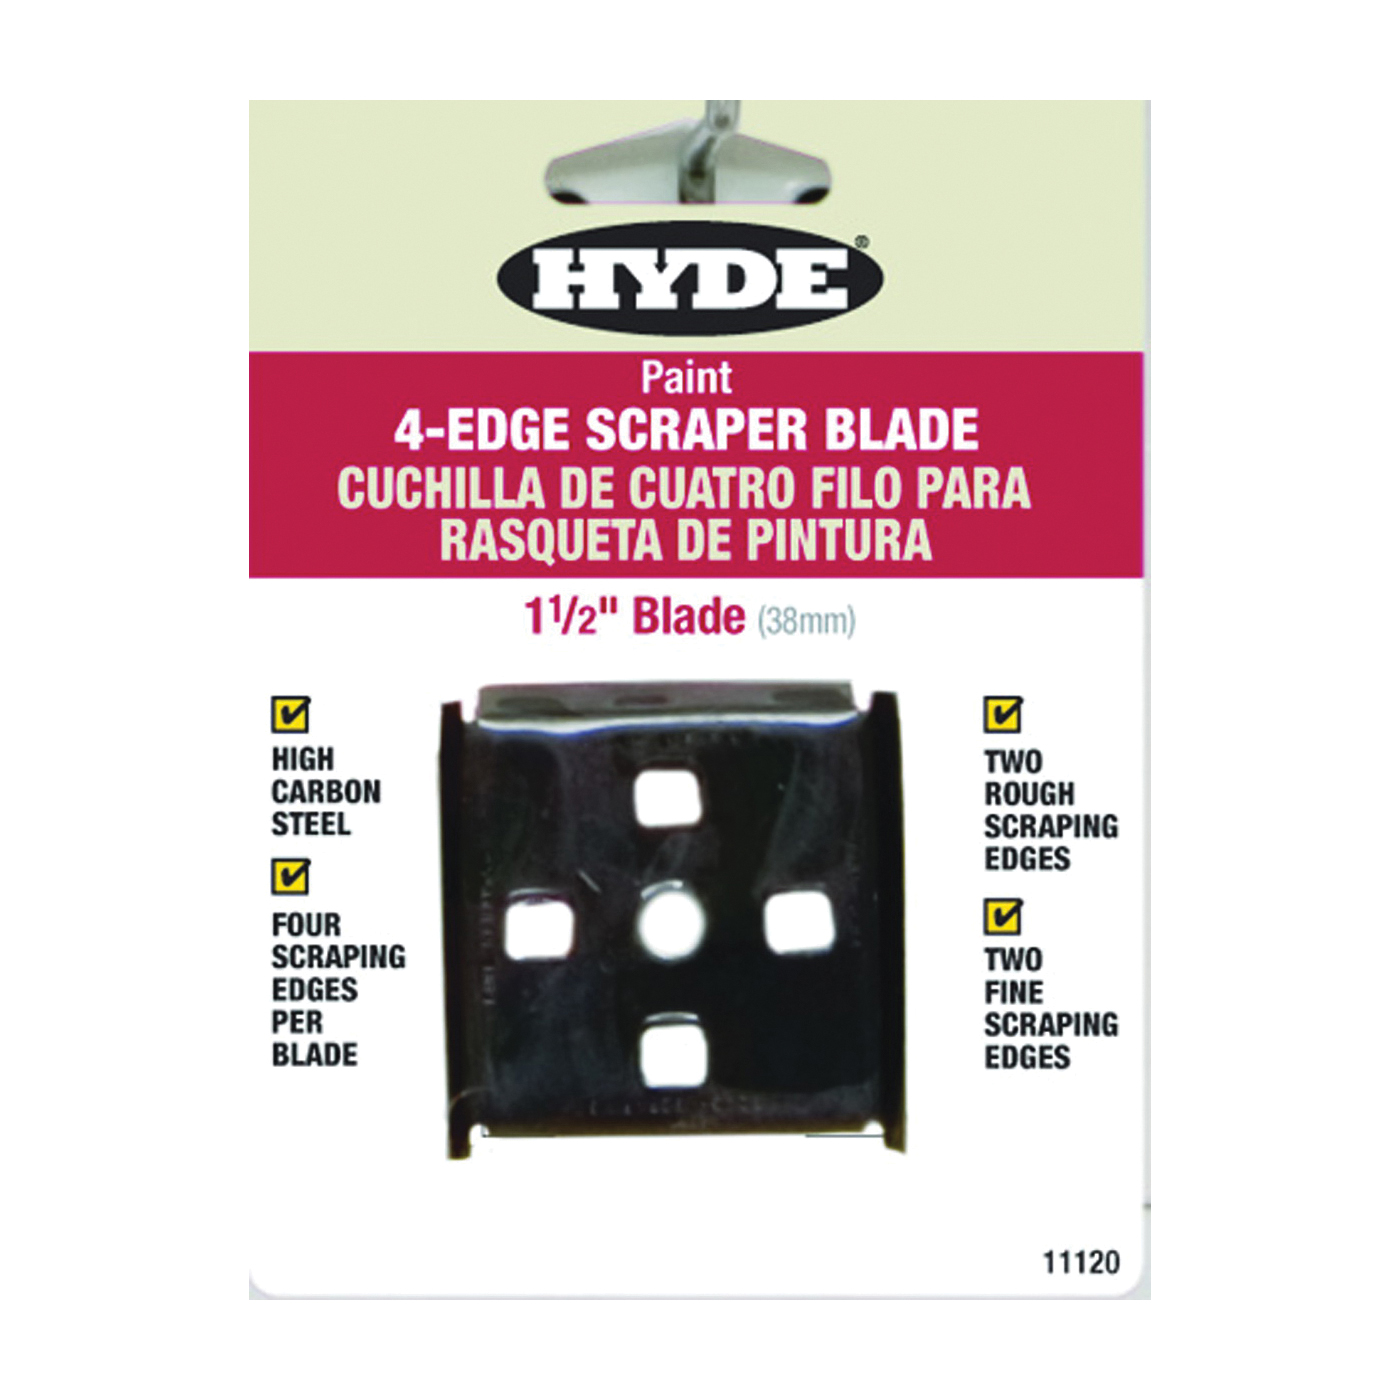 Picture of HYDE 11120 Scraper Blade, Four-Edge Blade, 1-1/2 in W Blade, HCS Blade